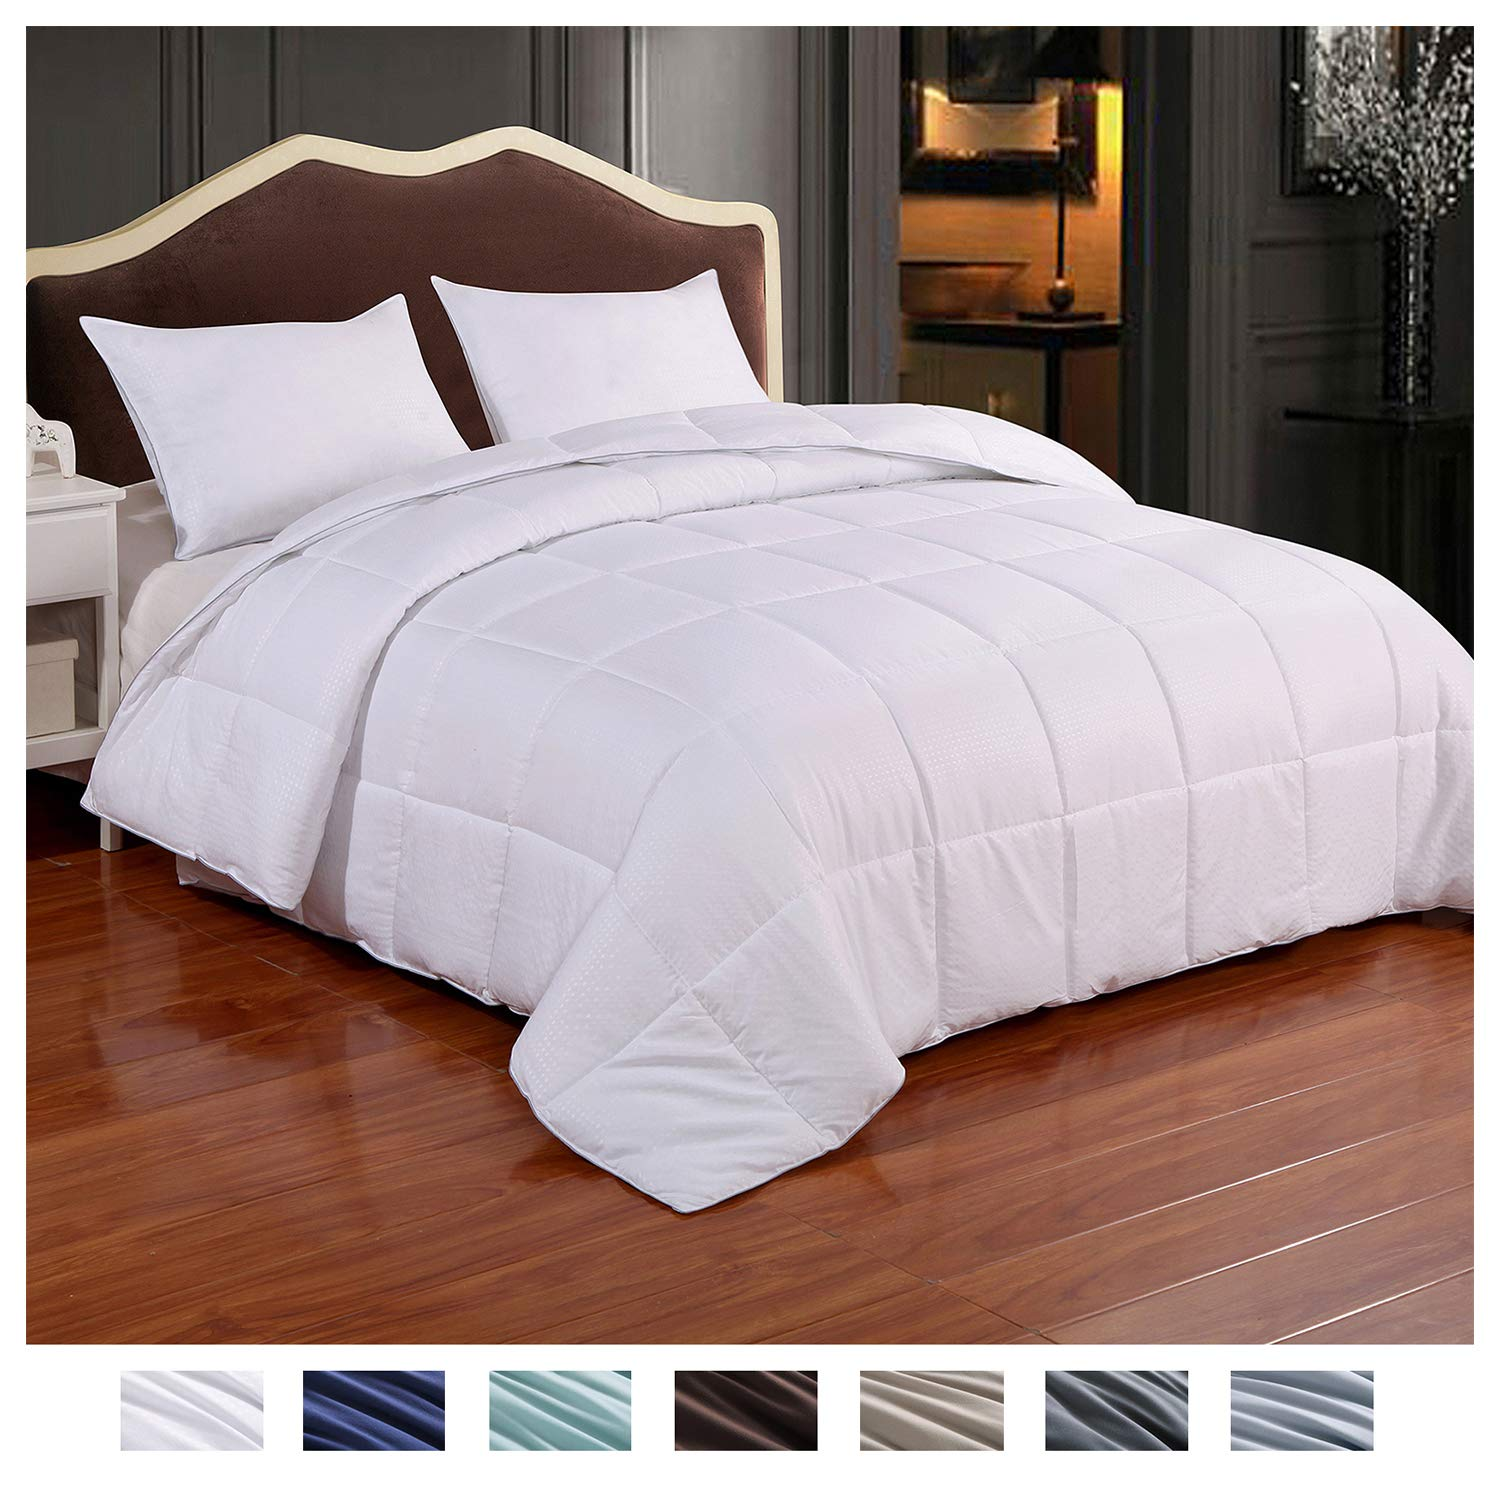 Homelike Moment Reversible Lightweight Comforter - All Season Down Alternative Comforter Queen Summer Duvet Insert White Quilted Bed Comforters with Corner Tabs Full/Queen Size White